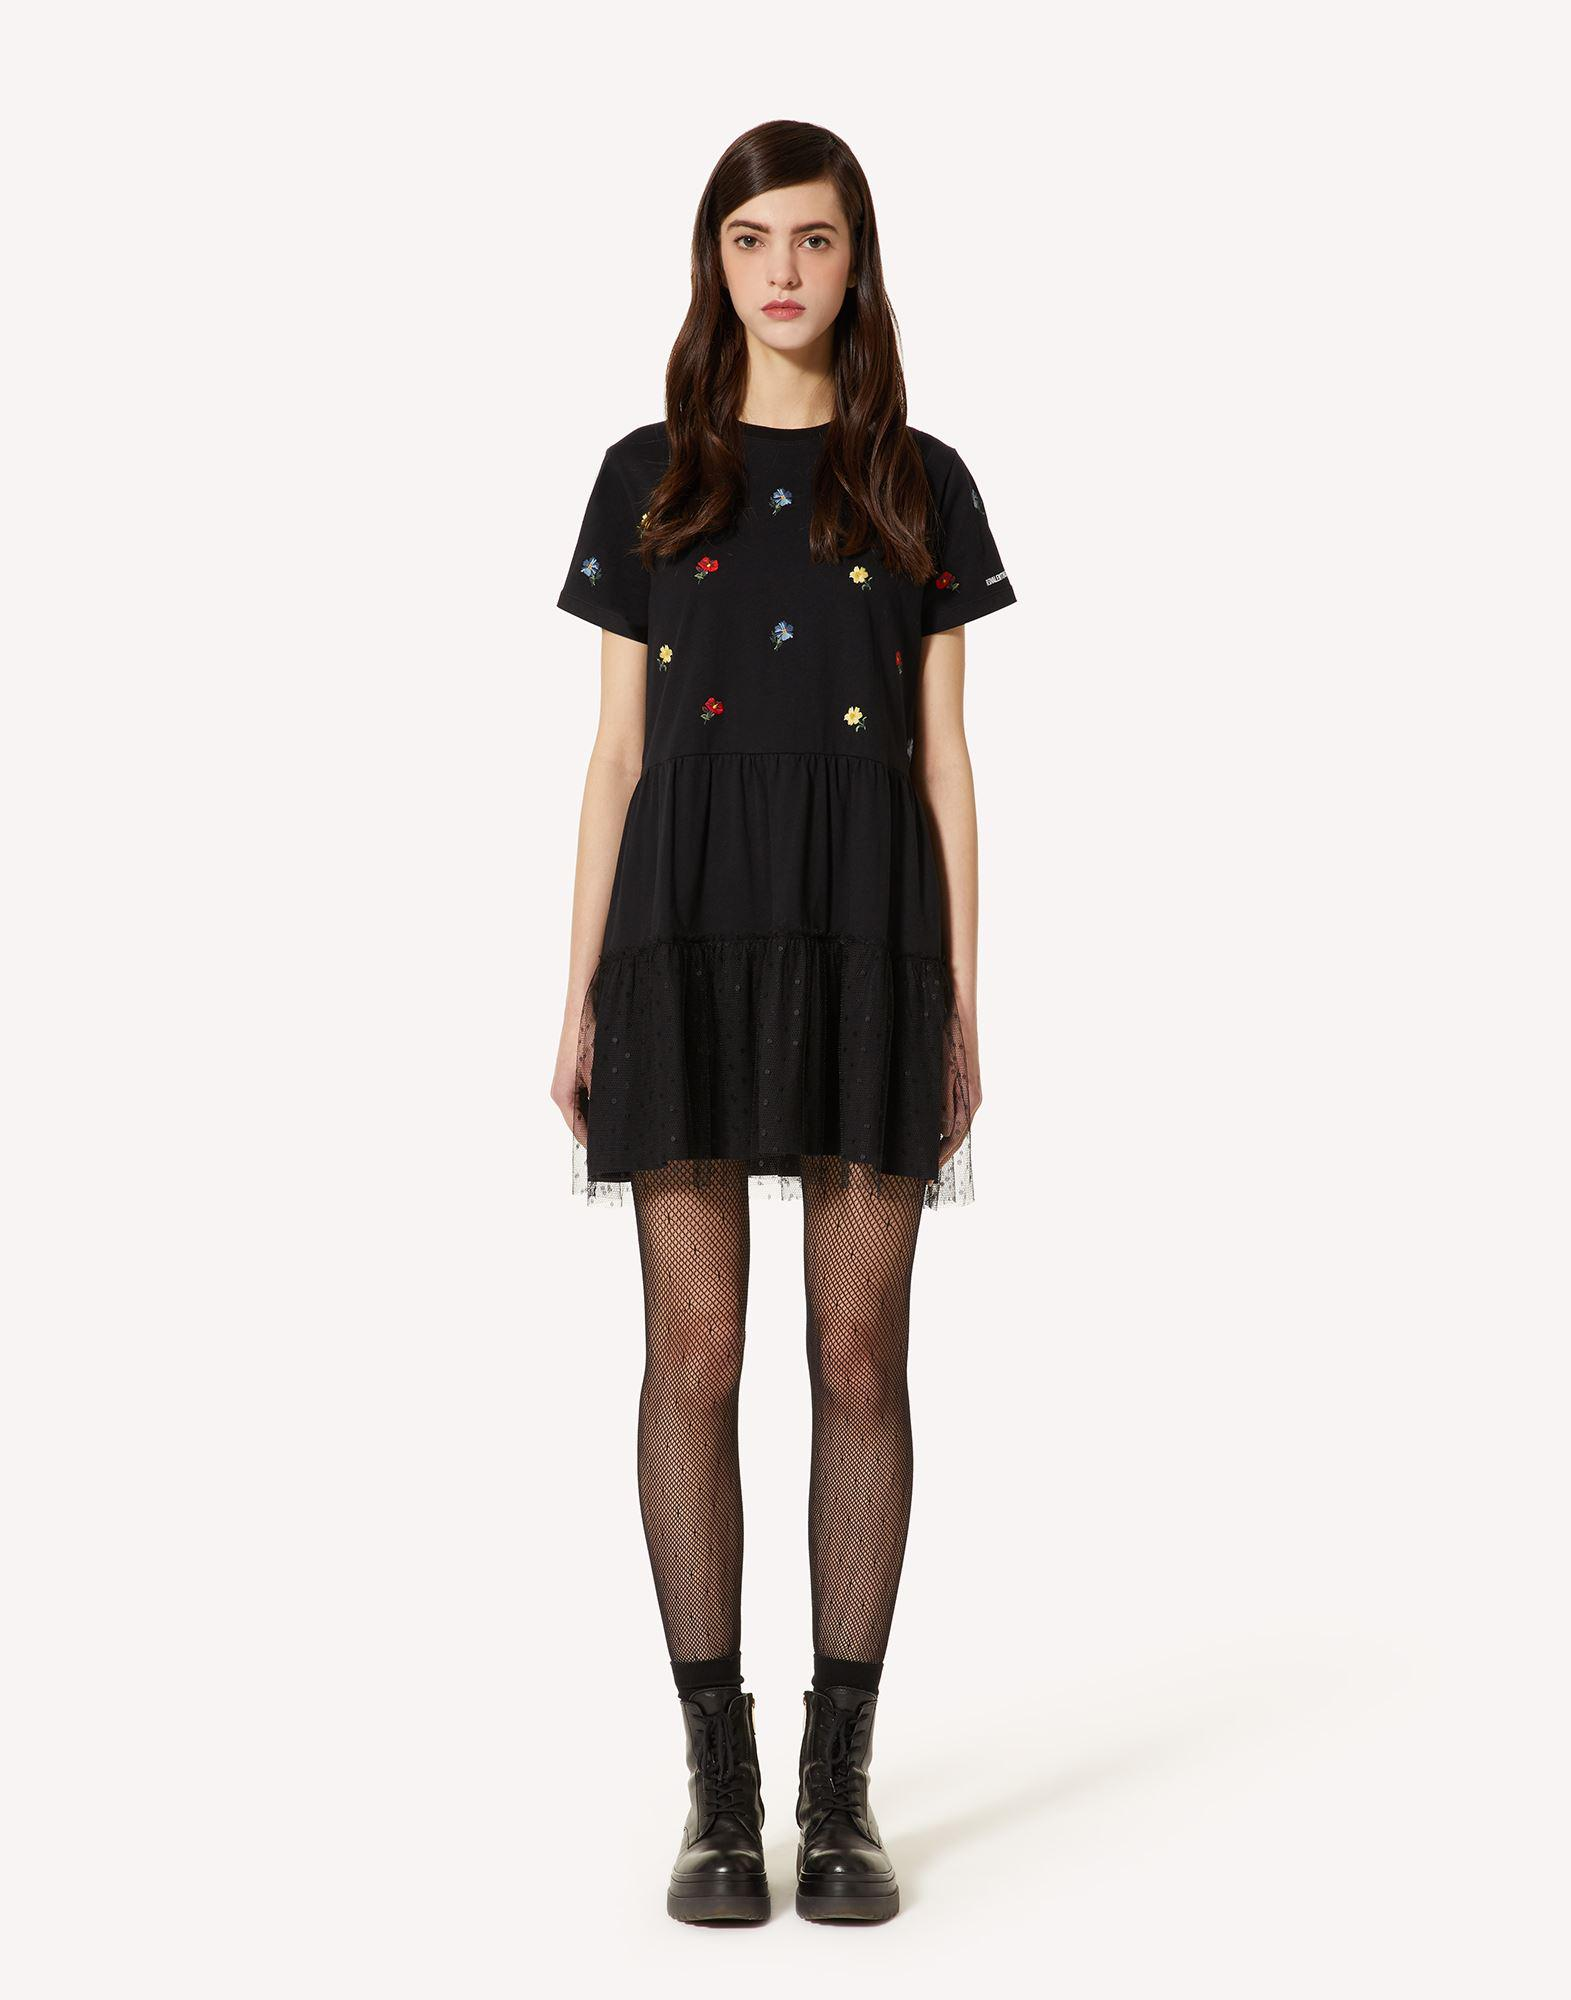 T-SHIRT DRESS WITH DELICATE FLOWERS EMBROIDERY